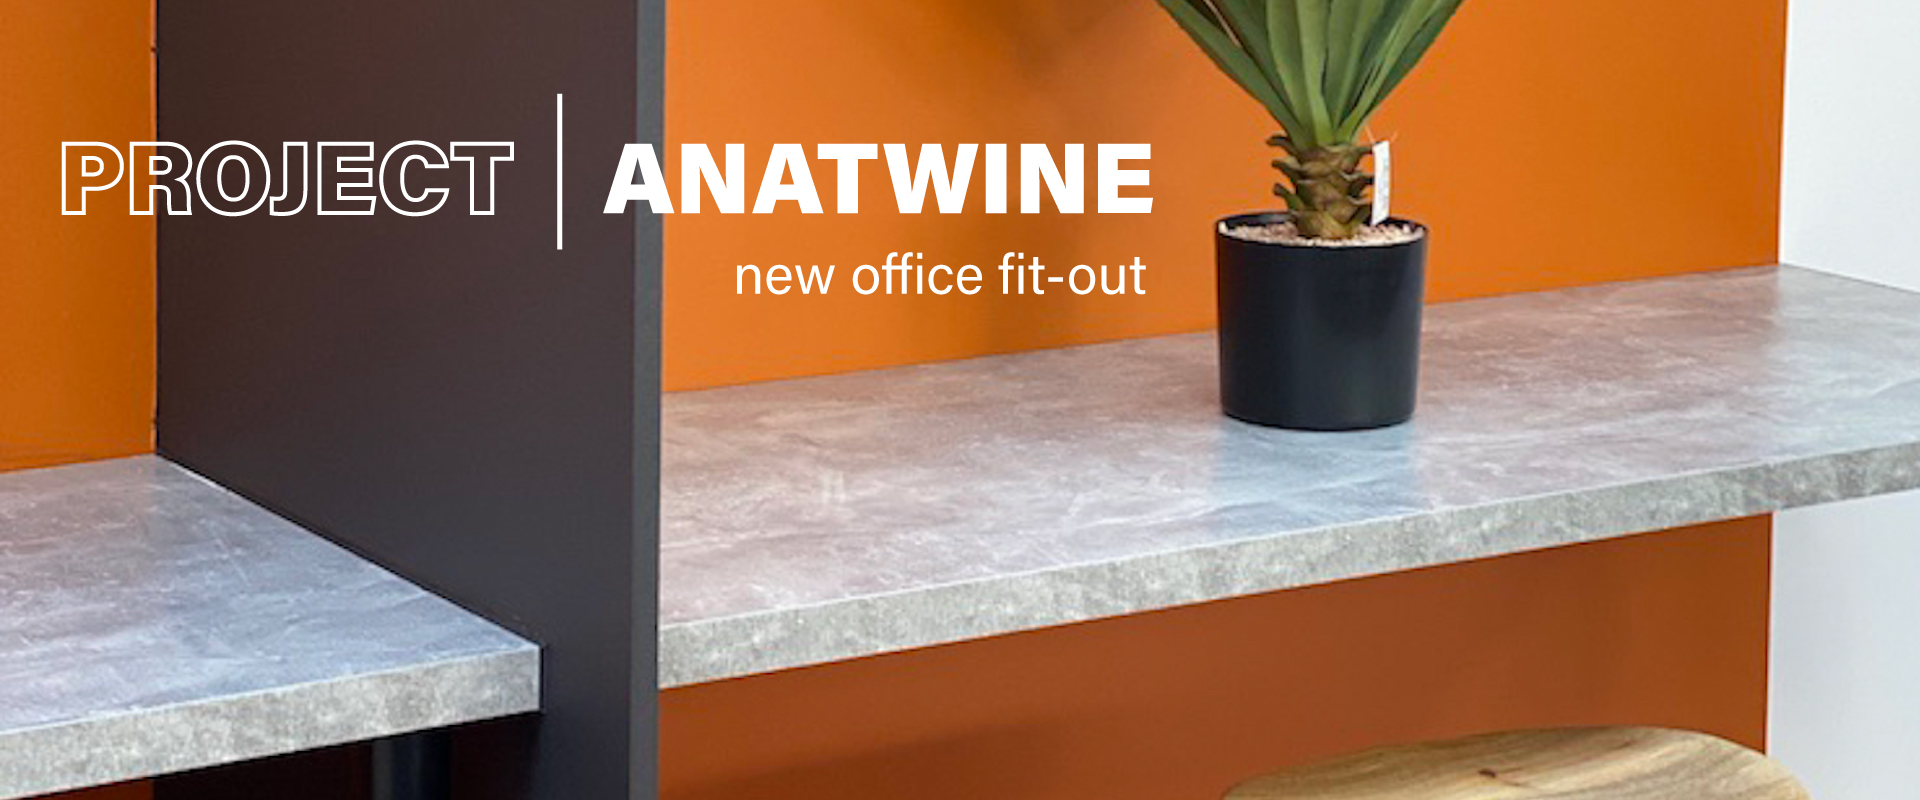 anatwine office fit out project